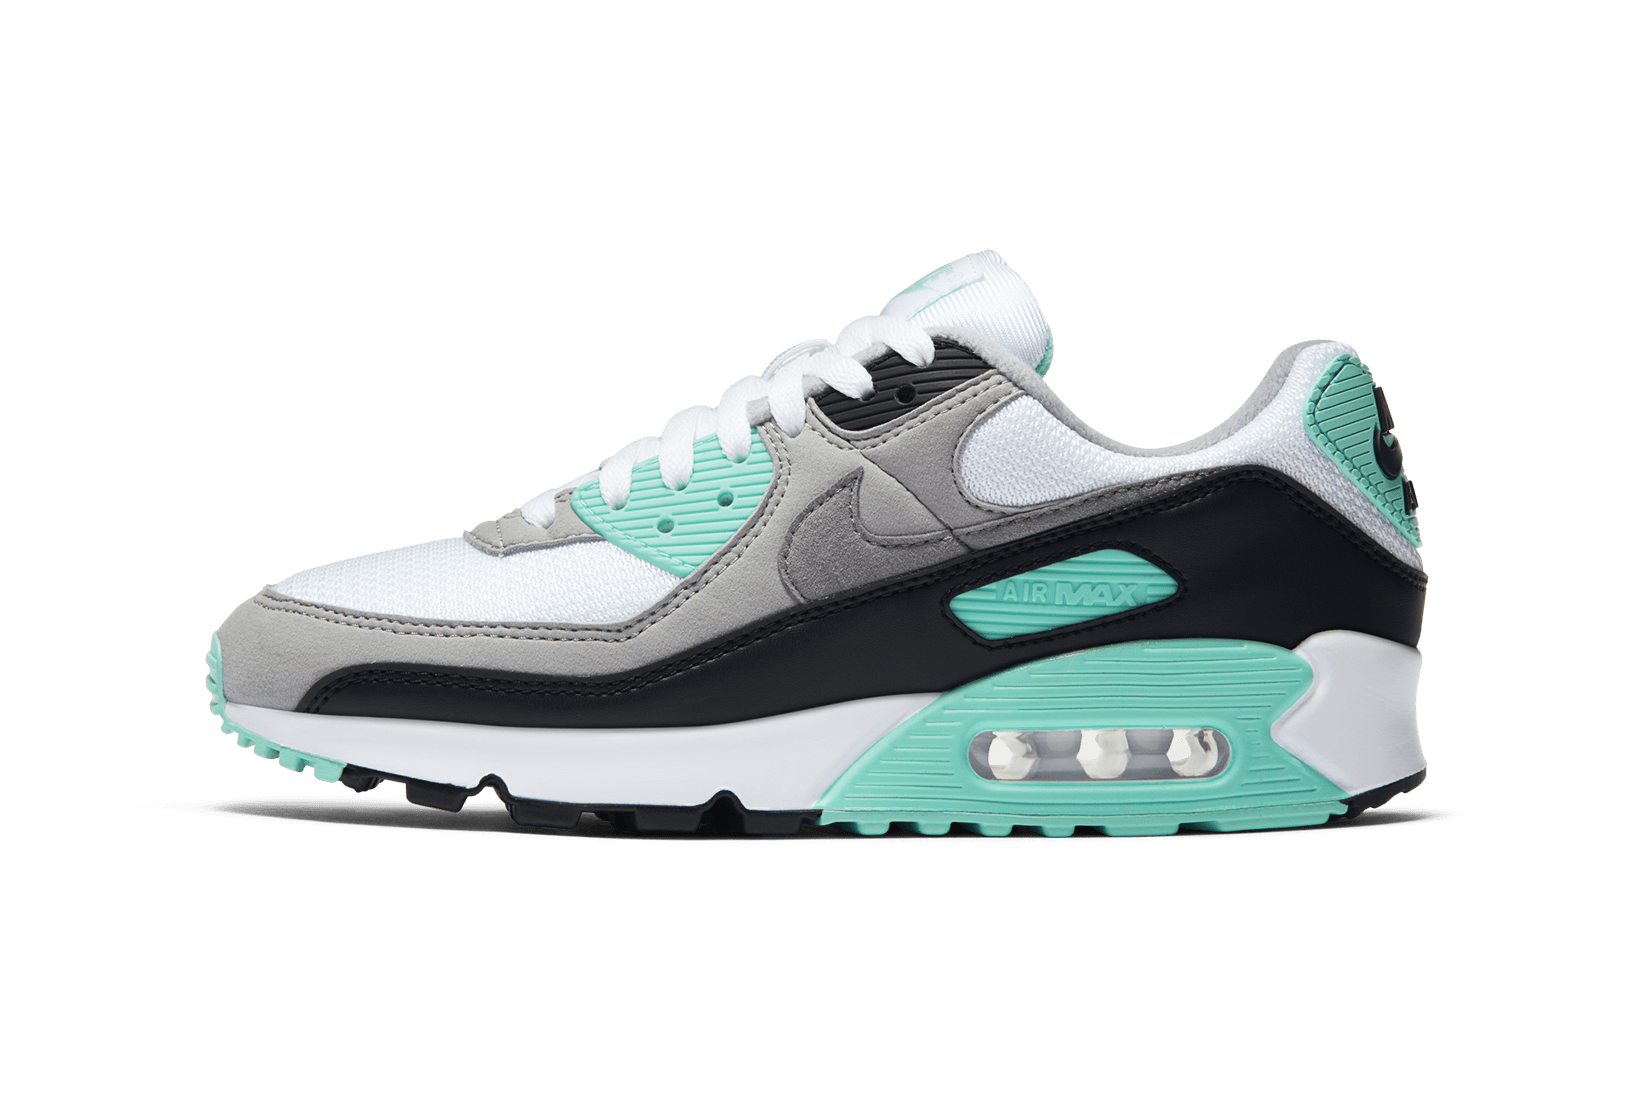 Nike Air Max 90 Is Updated For 30th